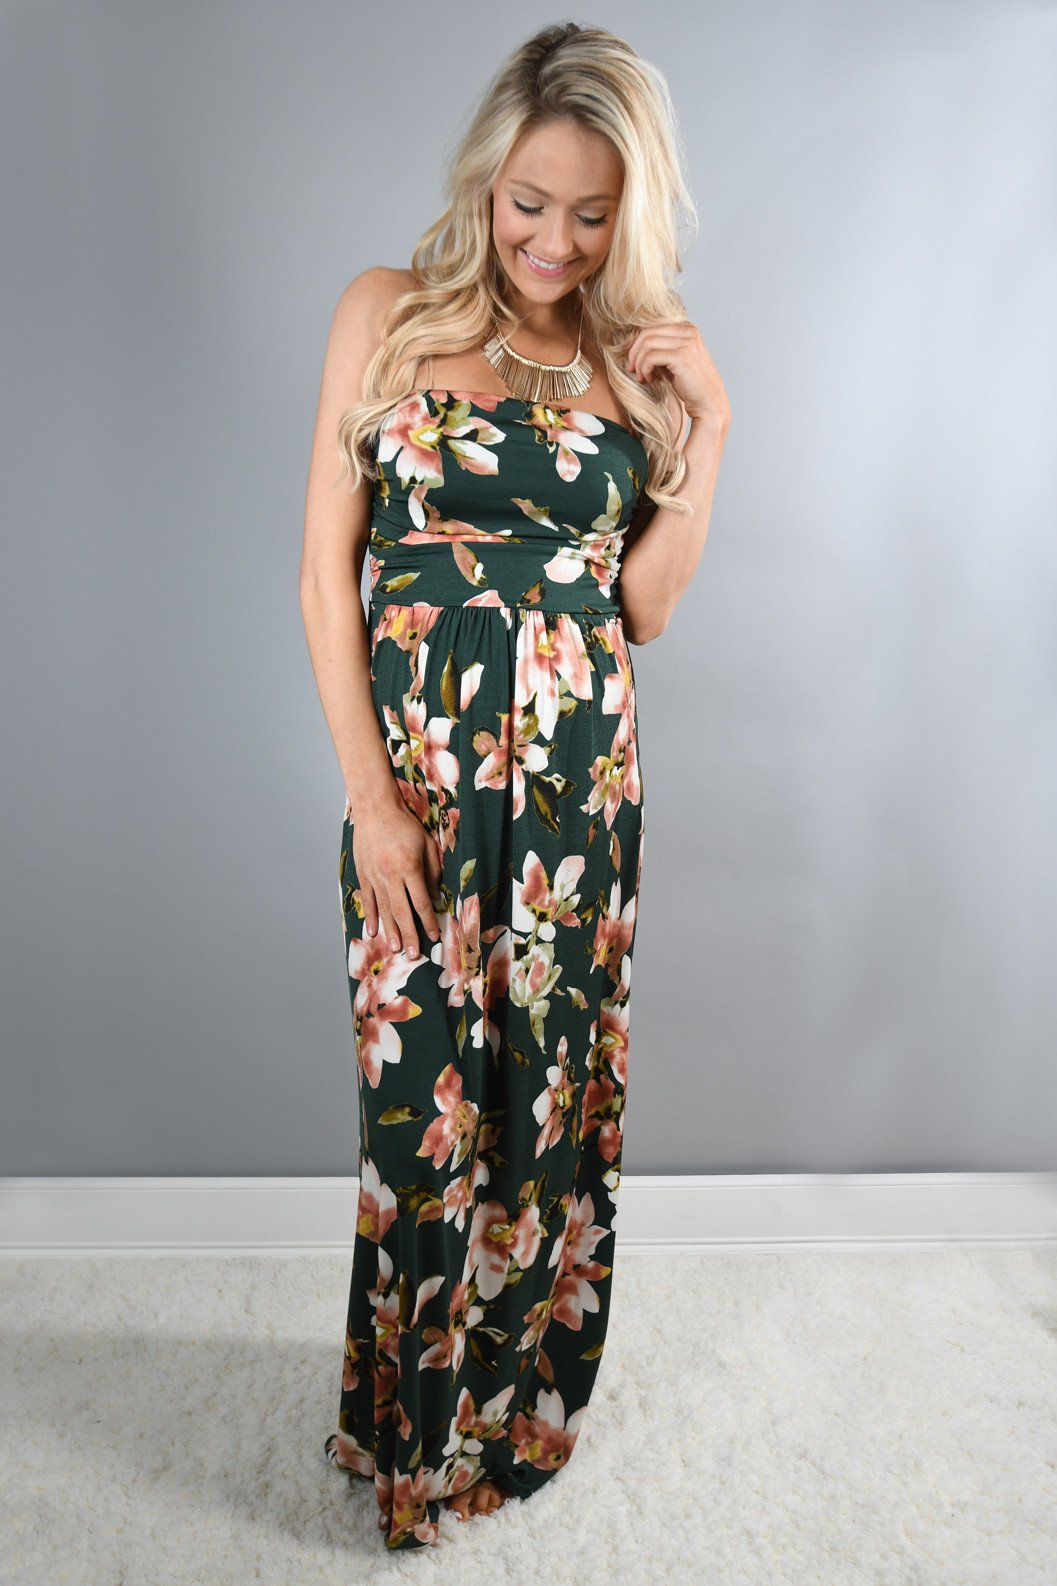 Strapless Olive Floral Maxi Dress